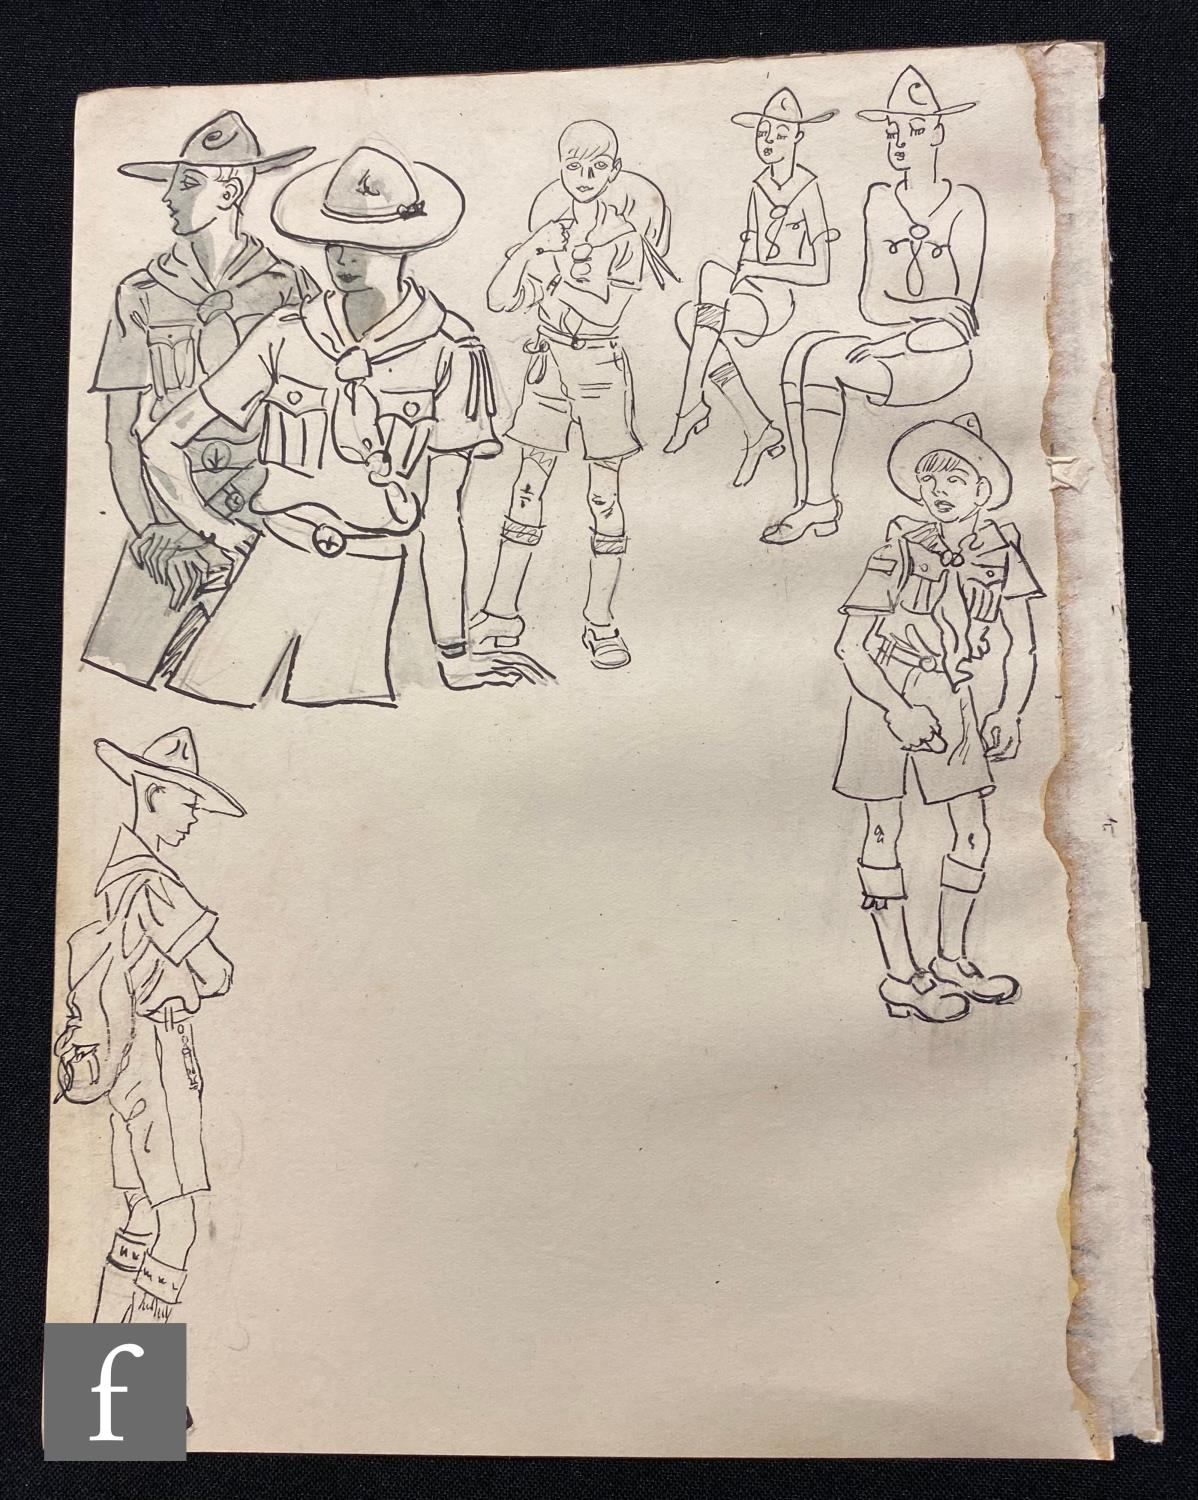 ALBERT WAINWRIGHT (1898-1943) - A sketch depicting boy scouts in various poses, to the reverse a